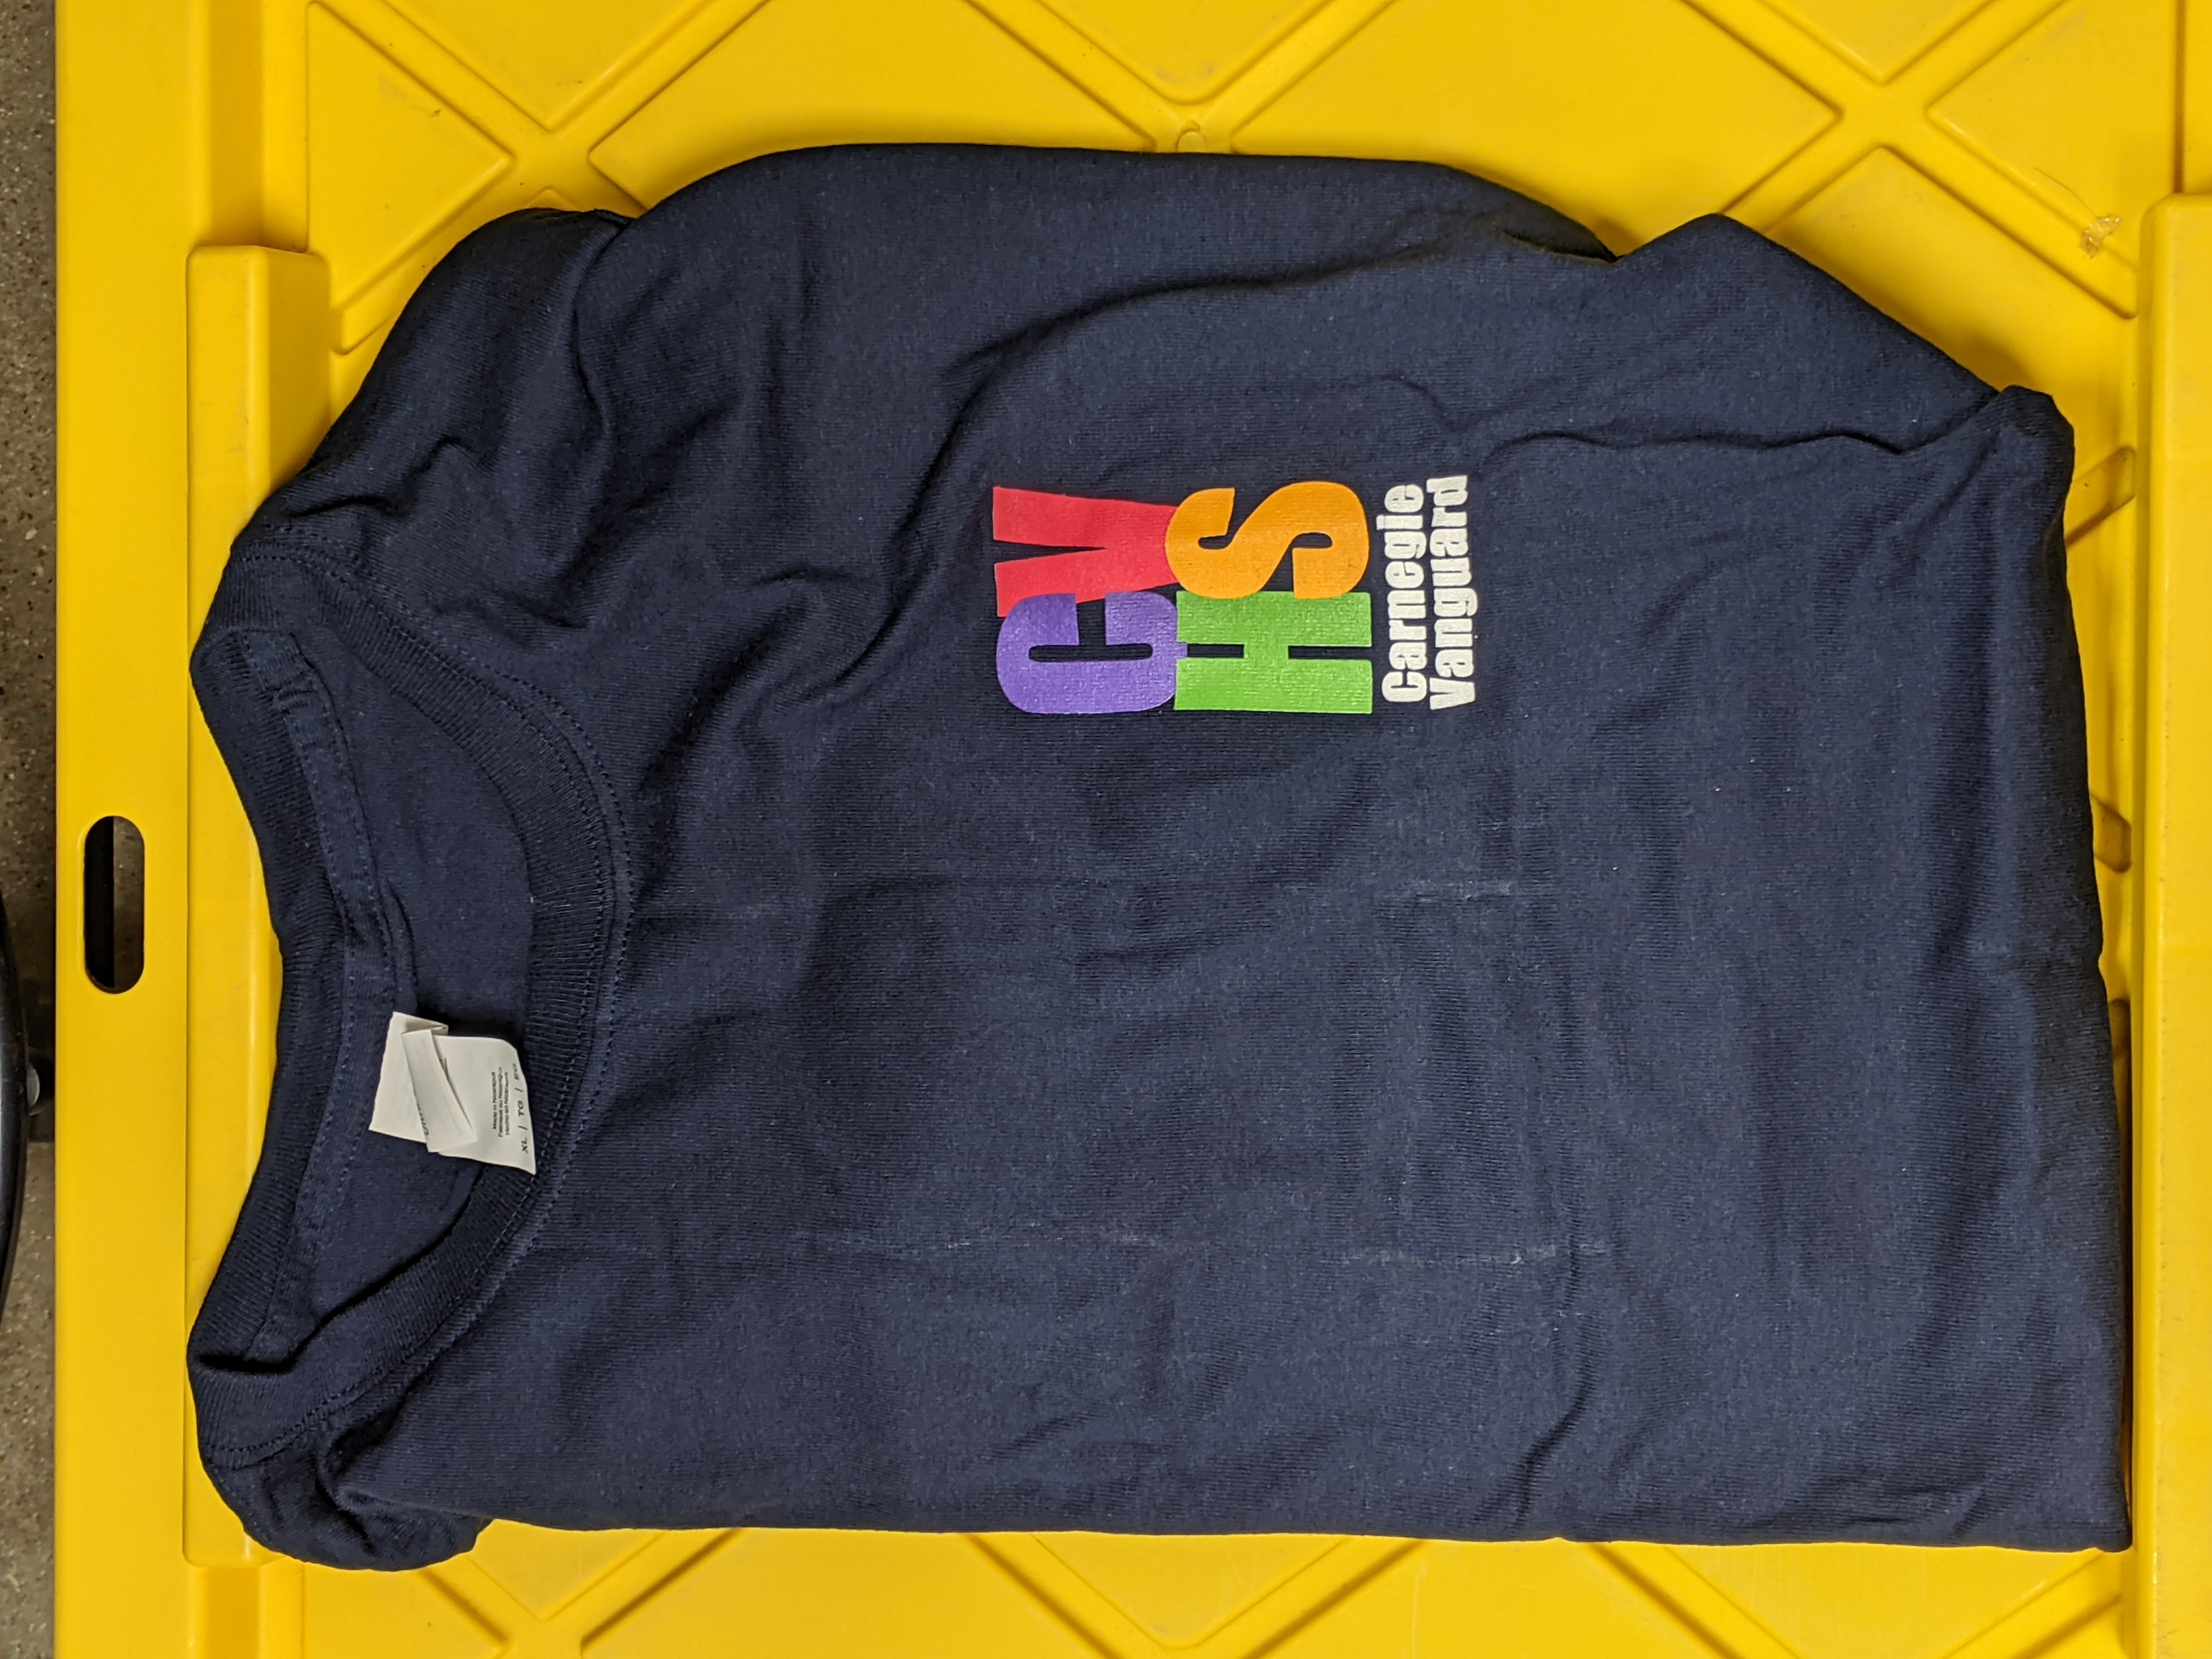 Sweatshirt Crew-neck Navy with 4-color logo (no S available)